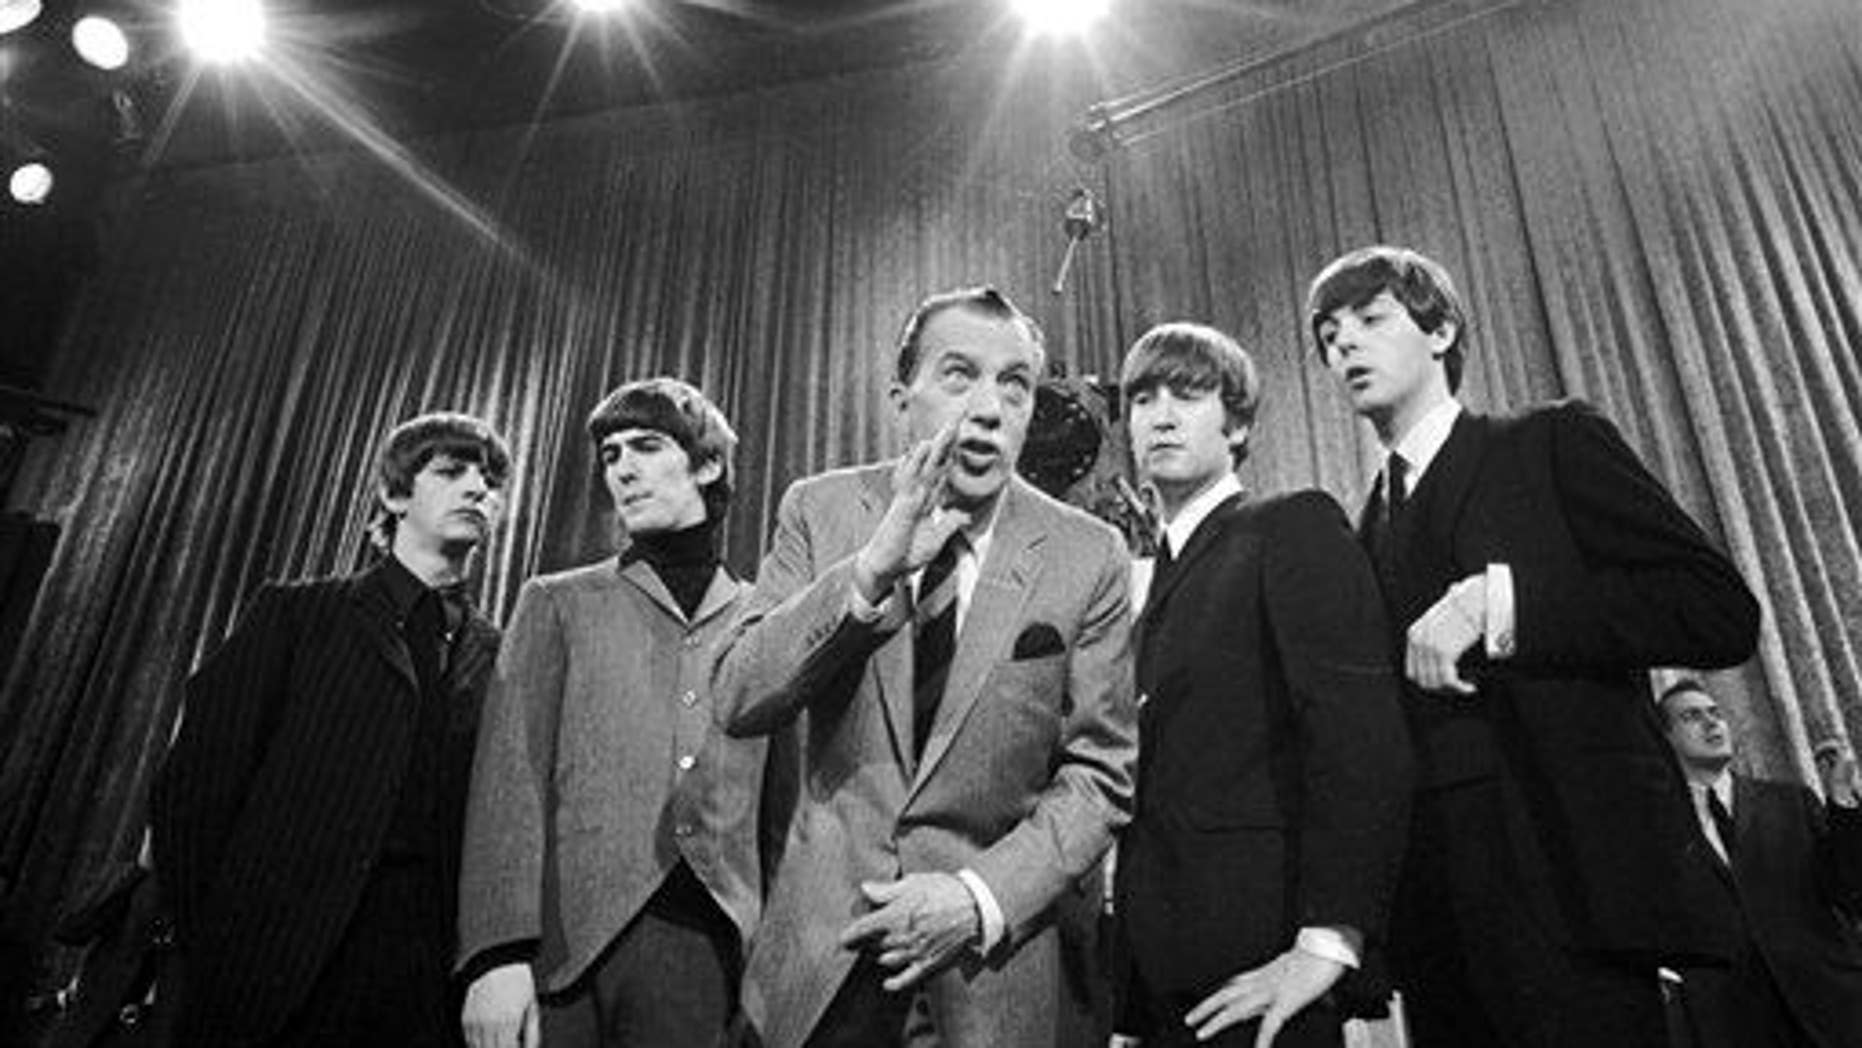 """In this Feb. 9, 1964, file photo, Ed Sullivan, center, stands with the Beatles during a rehearsal for the British group's first American appearance on """"The Ed Sullivan Show"""" in New York."""